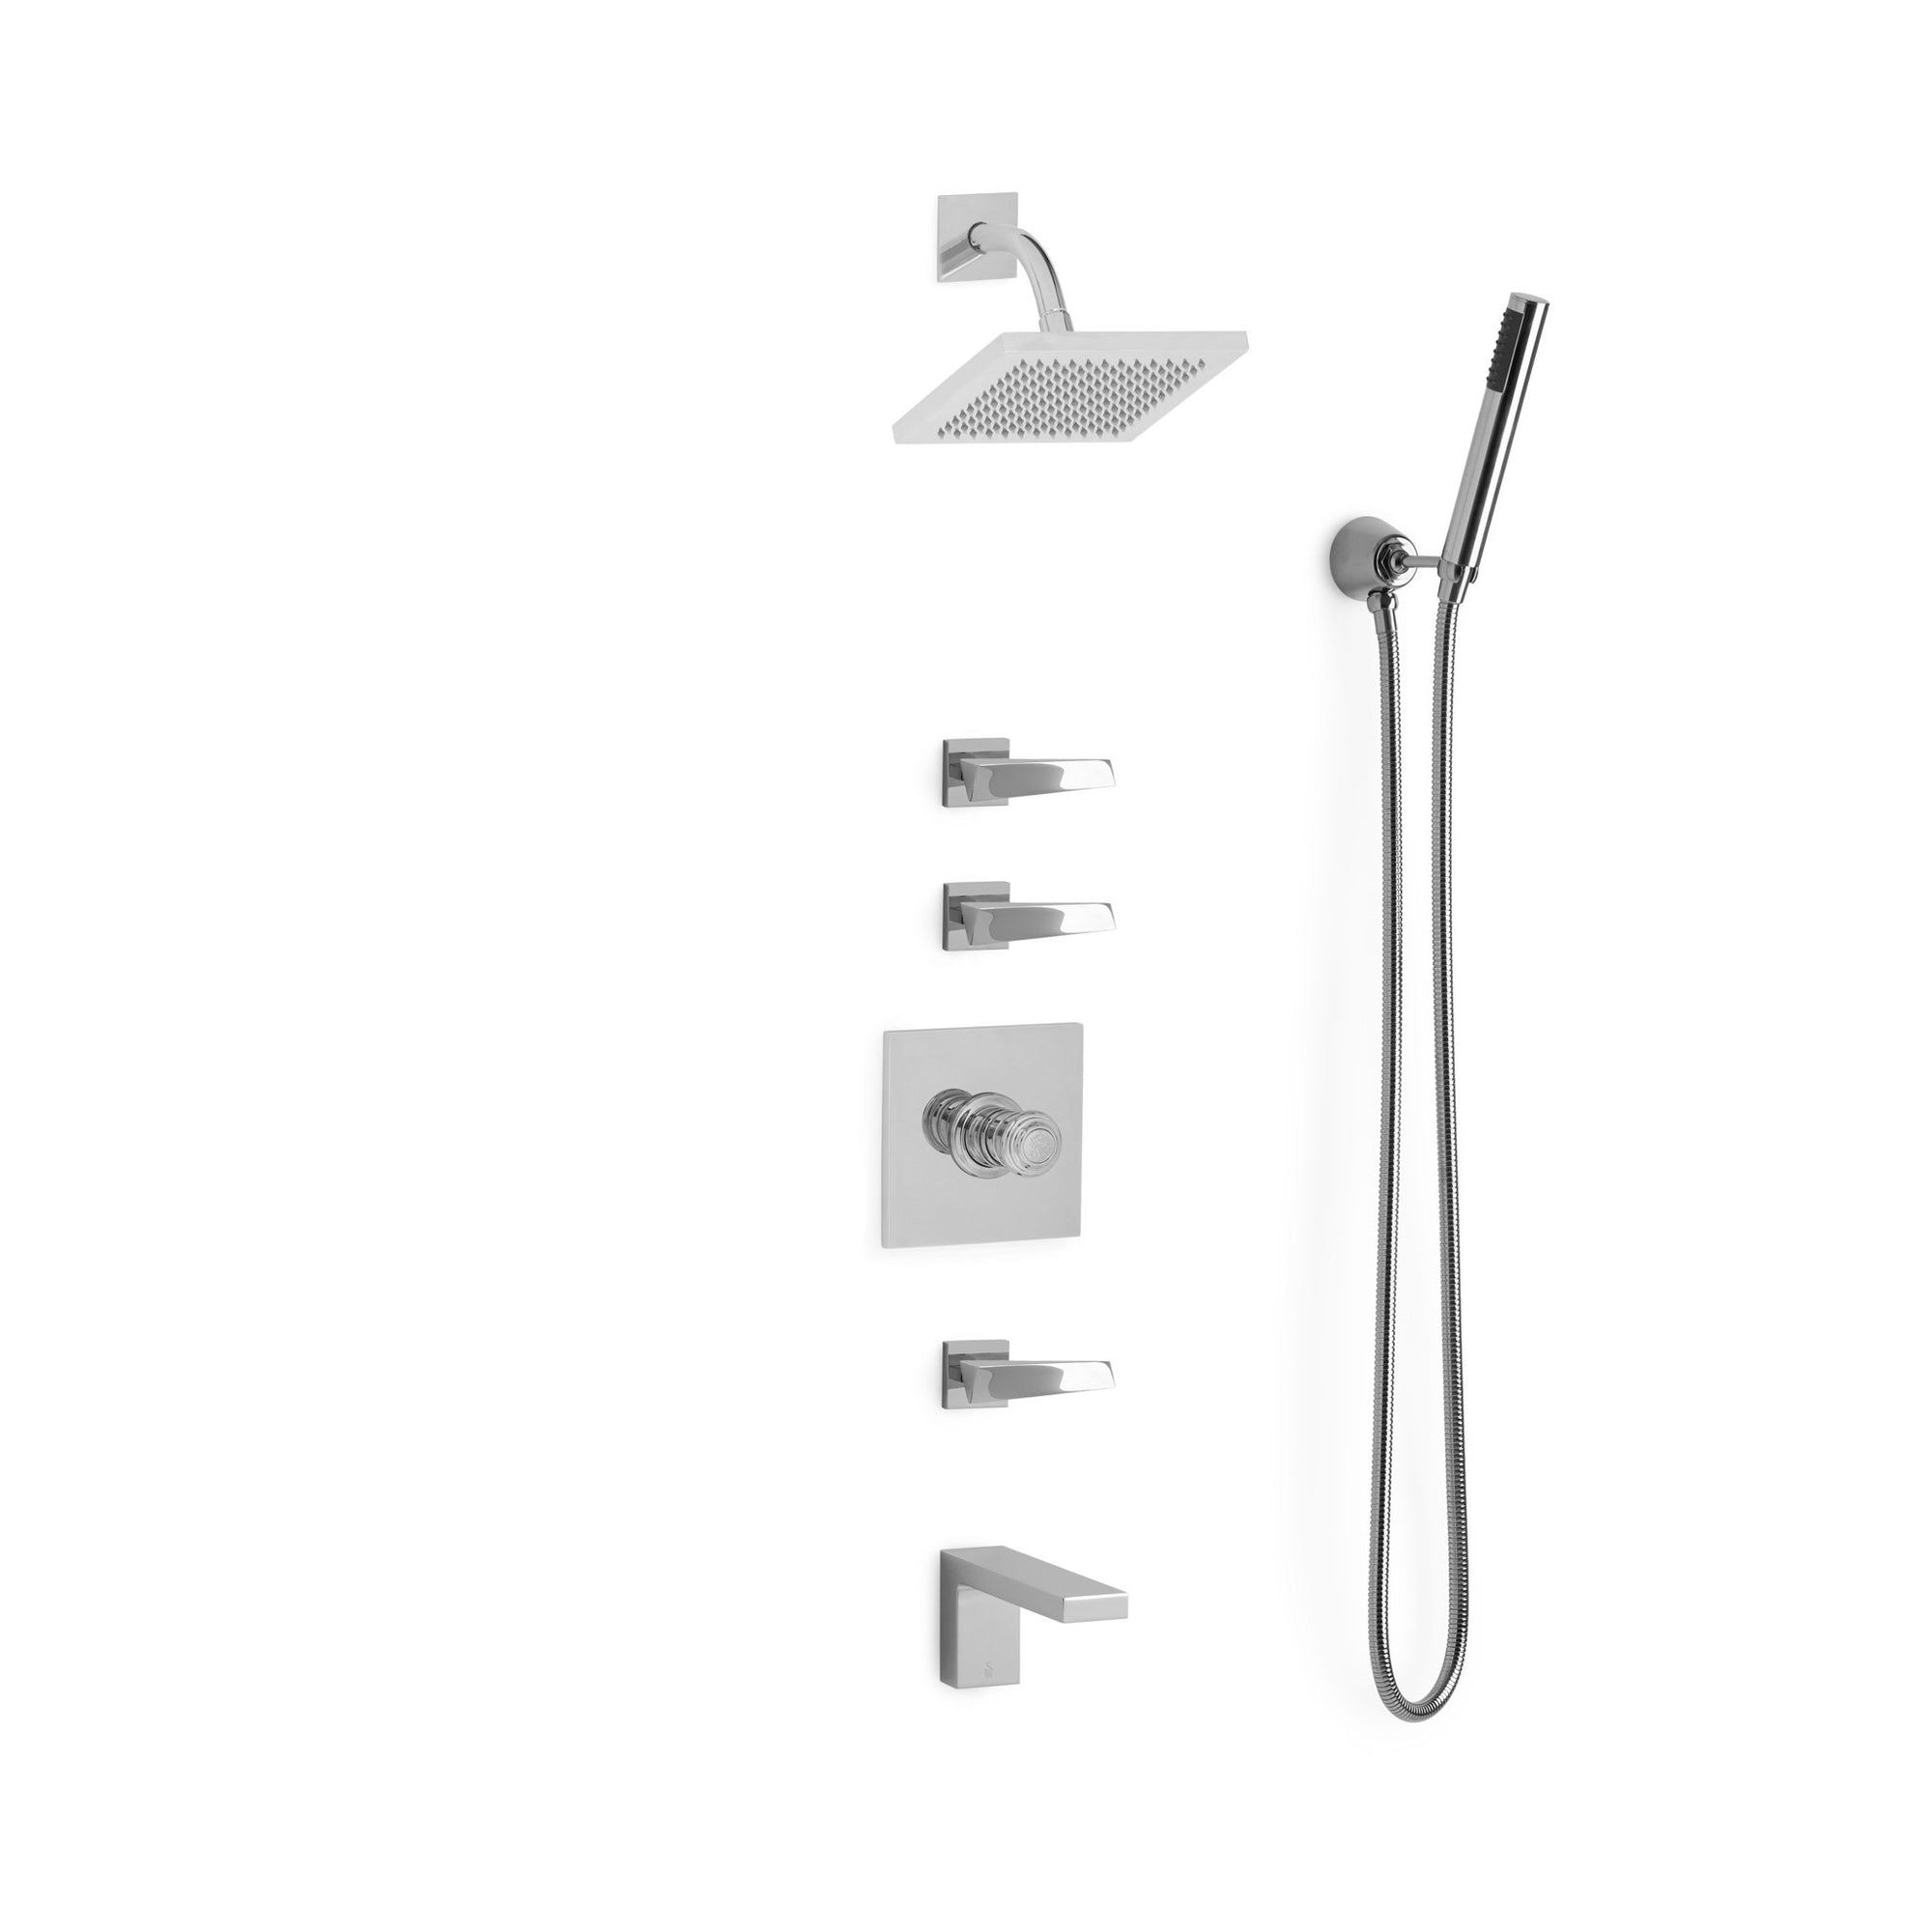 Sherle Wagner International Arco Modern High Flow Thermostatic Shower and Tub System in Polished Chrome metal finish